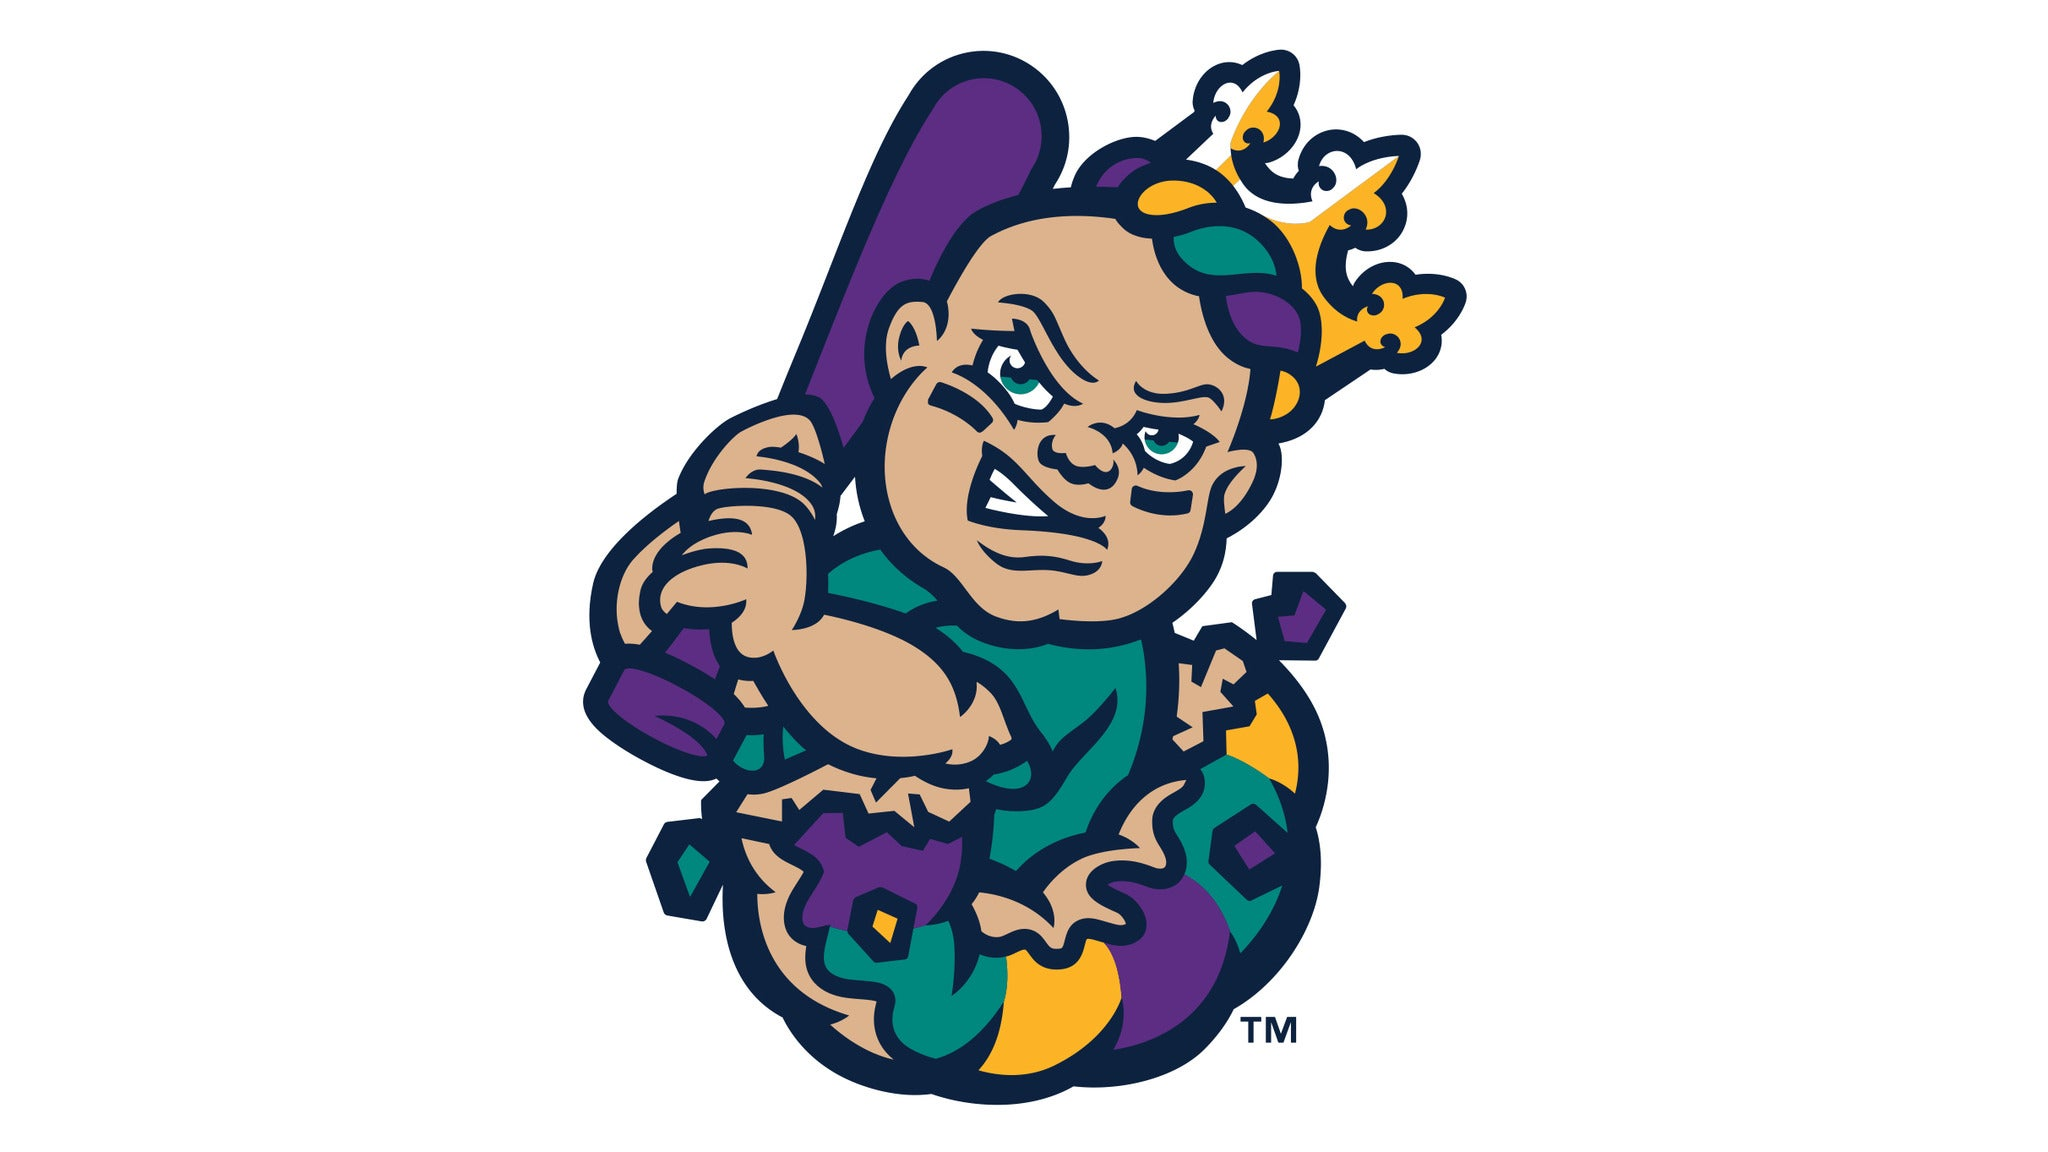 New Orleans Baby Cakes vs. Memphis Redbirds